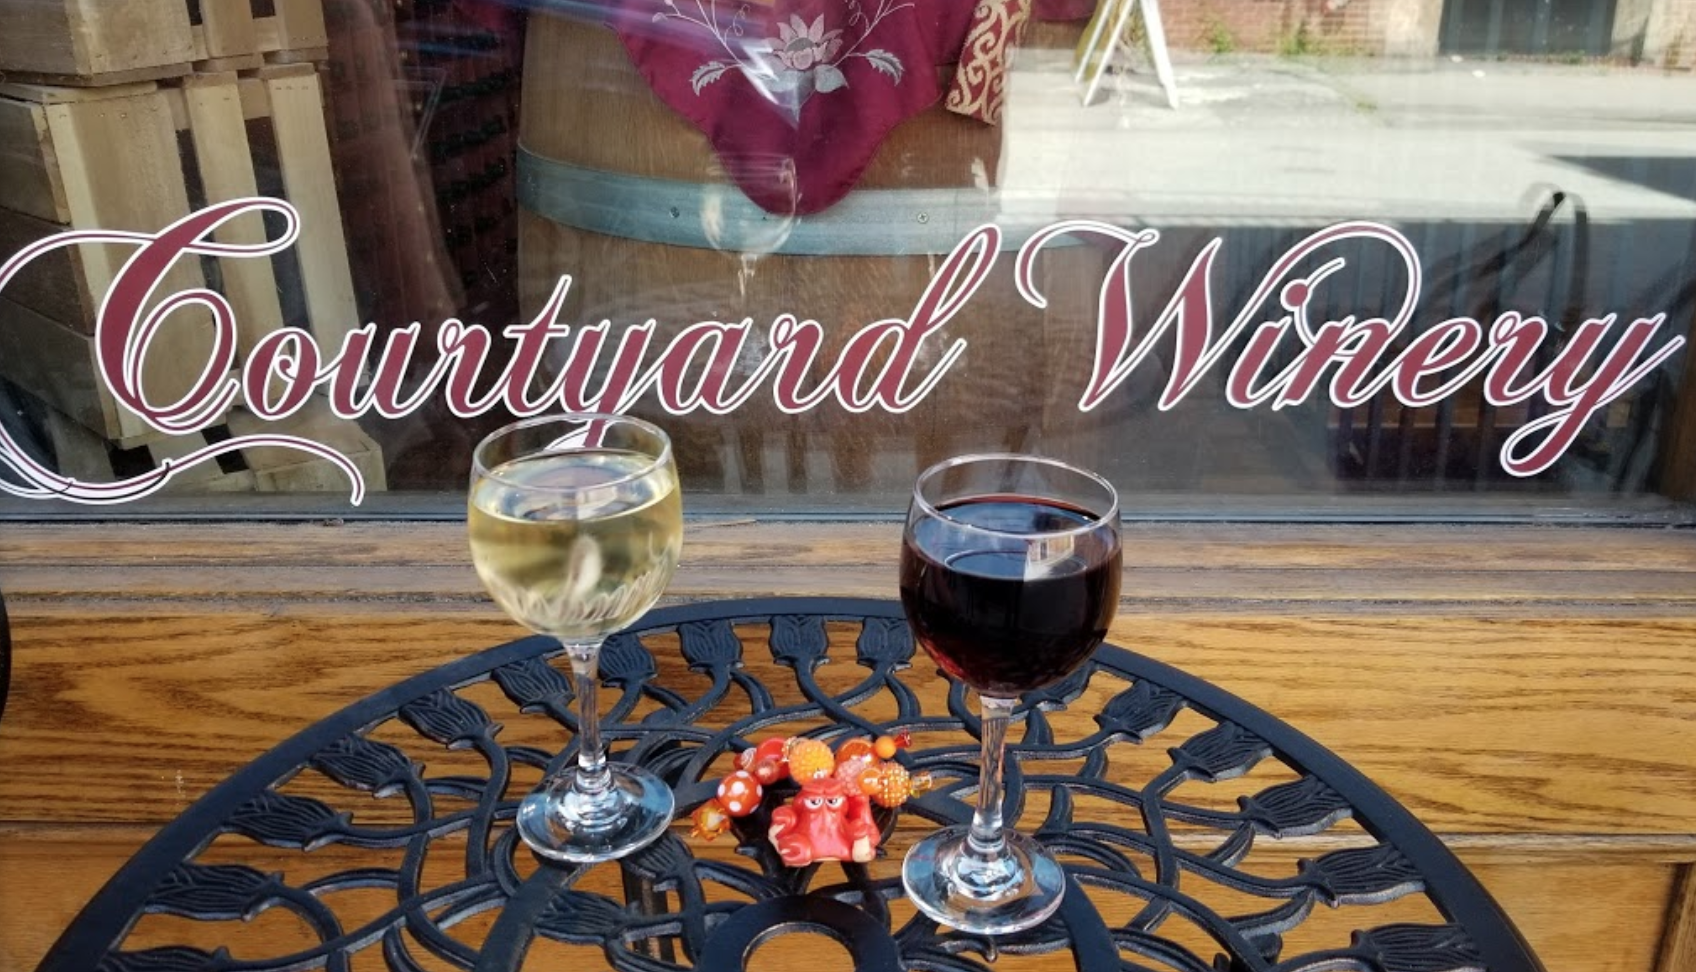 Courtyard Winery.png